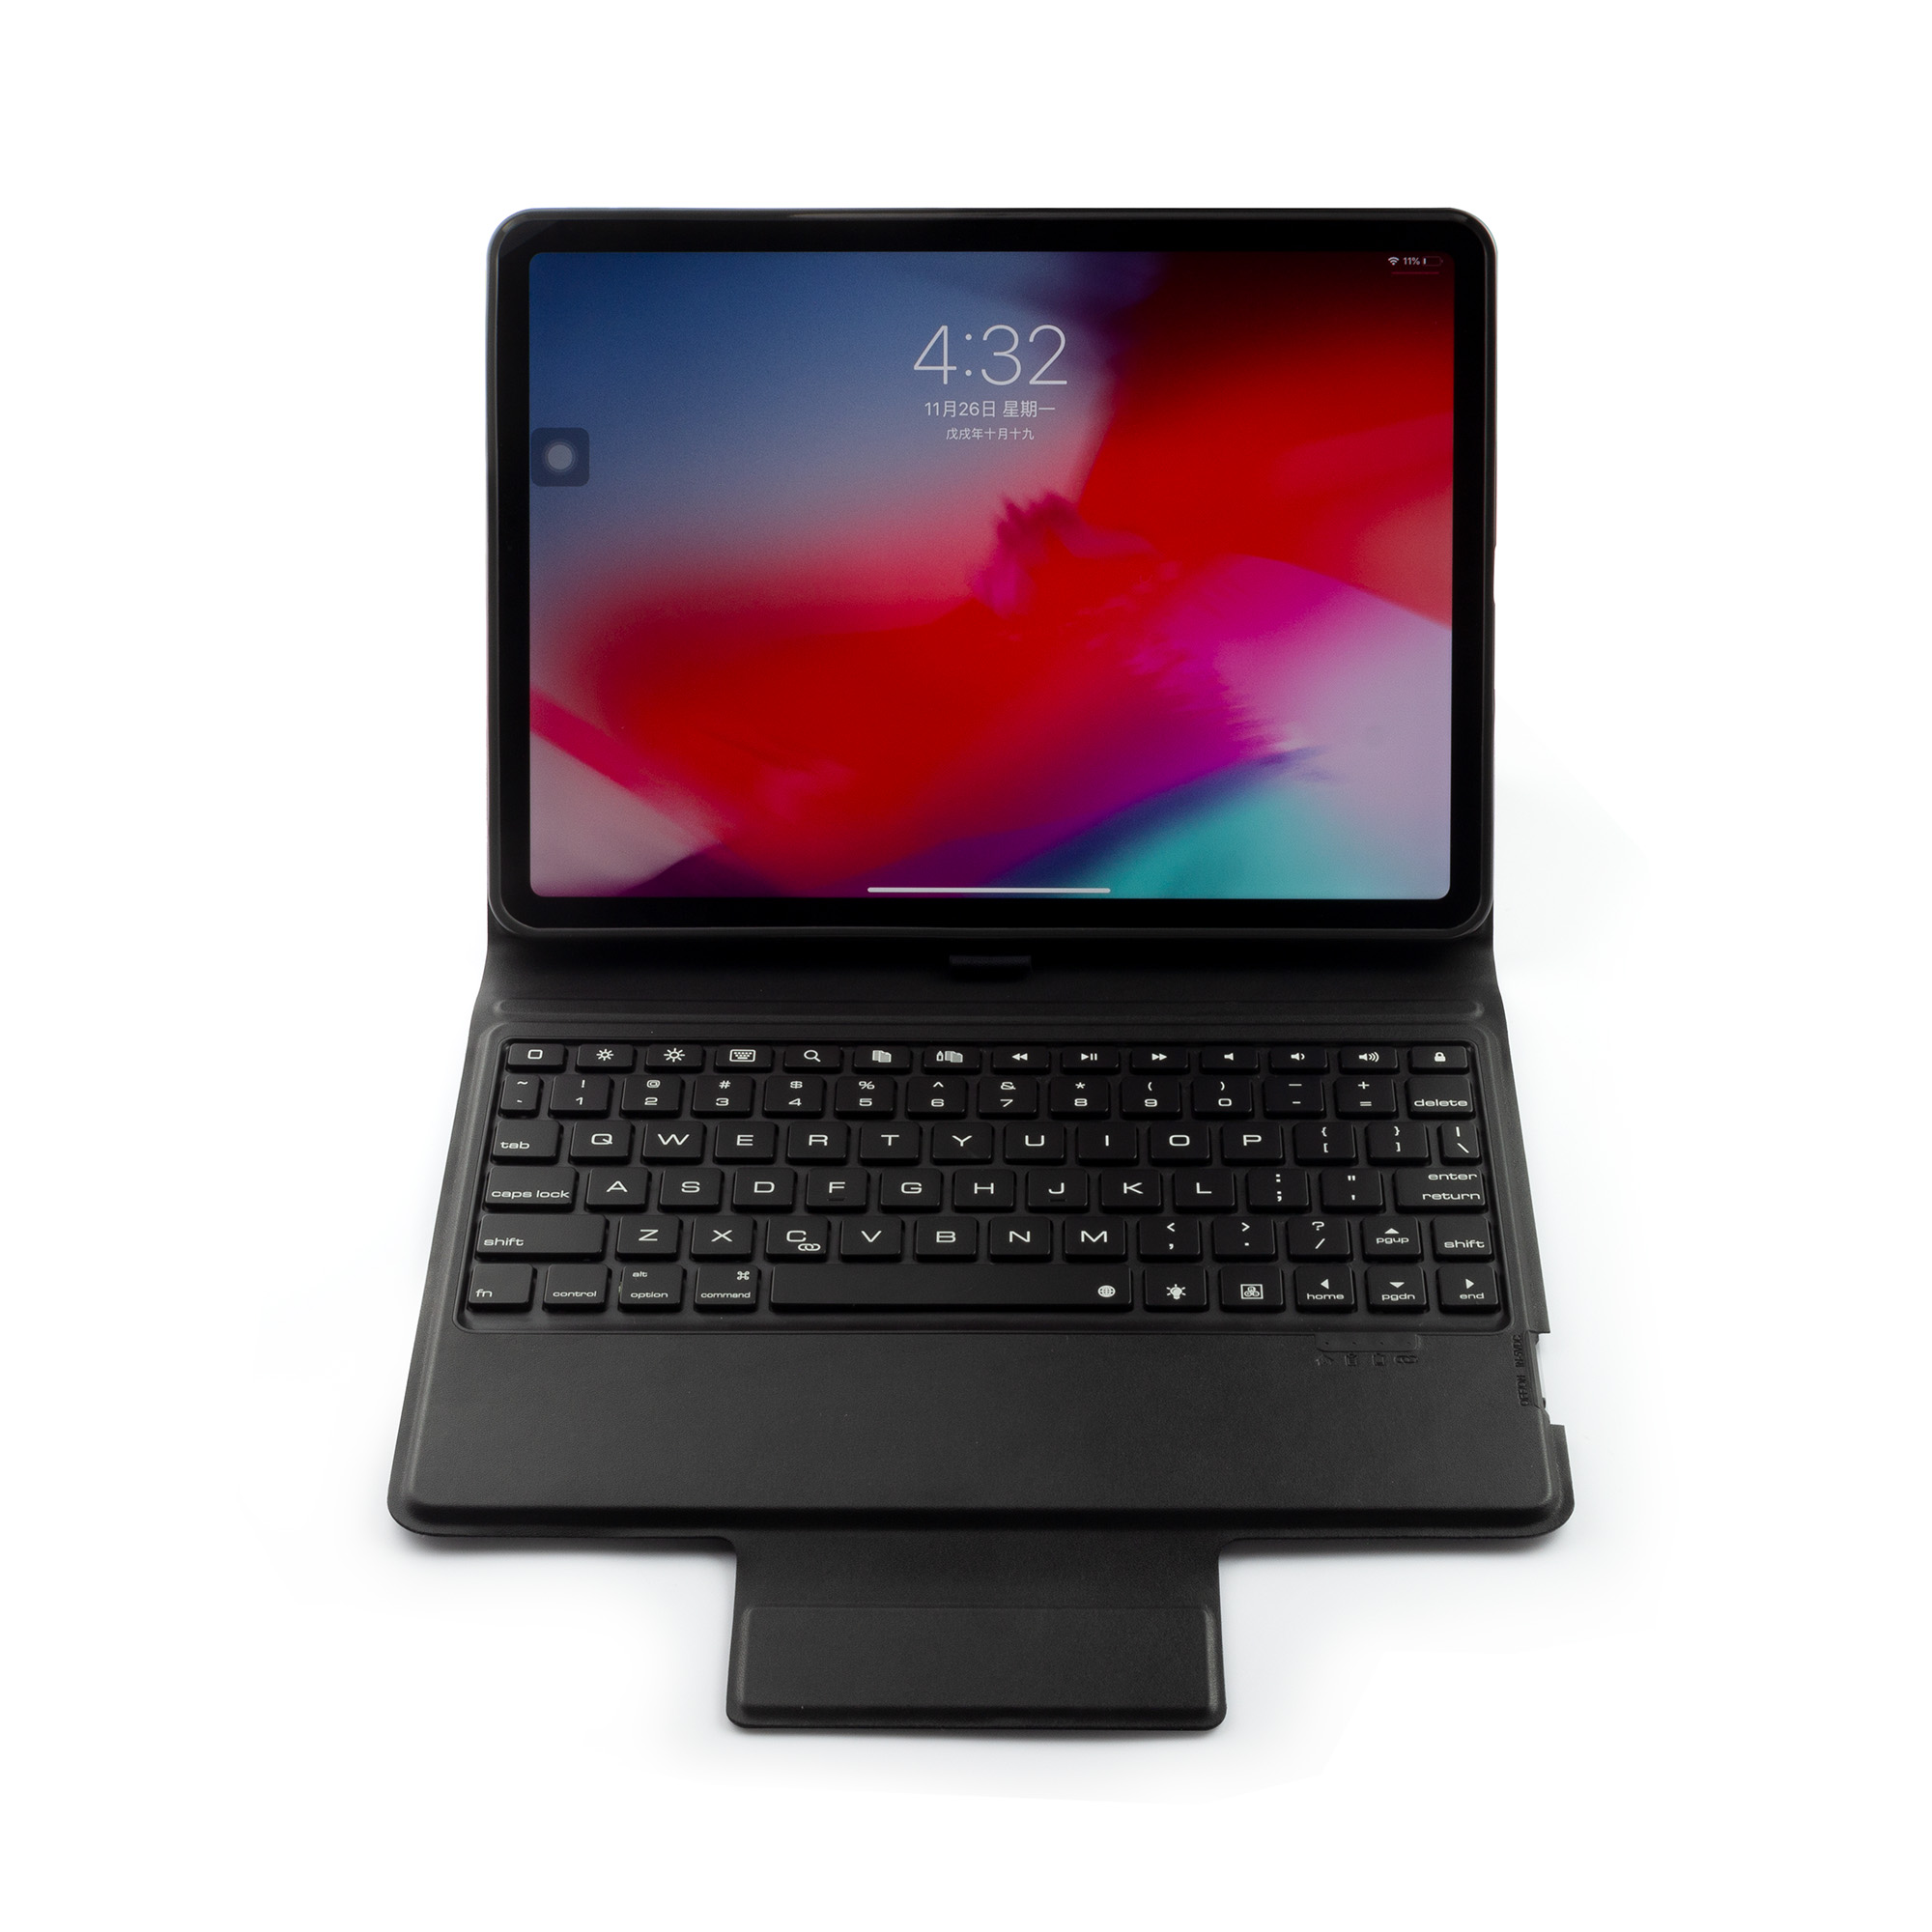 Hot sales folding comfortable Bluetooth wireless keyboard Leather protect case for <strong>Ipad</strong> Pro 11